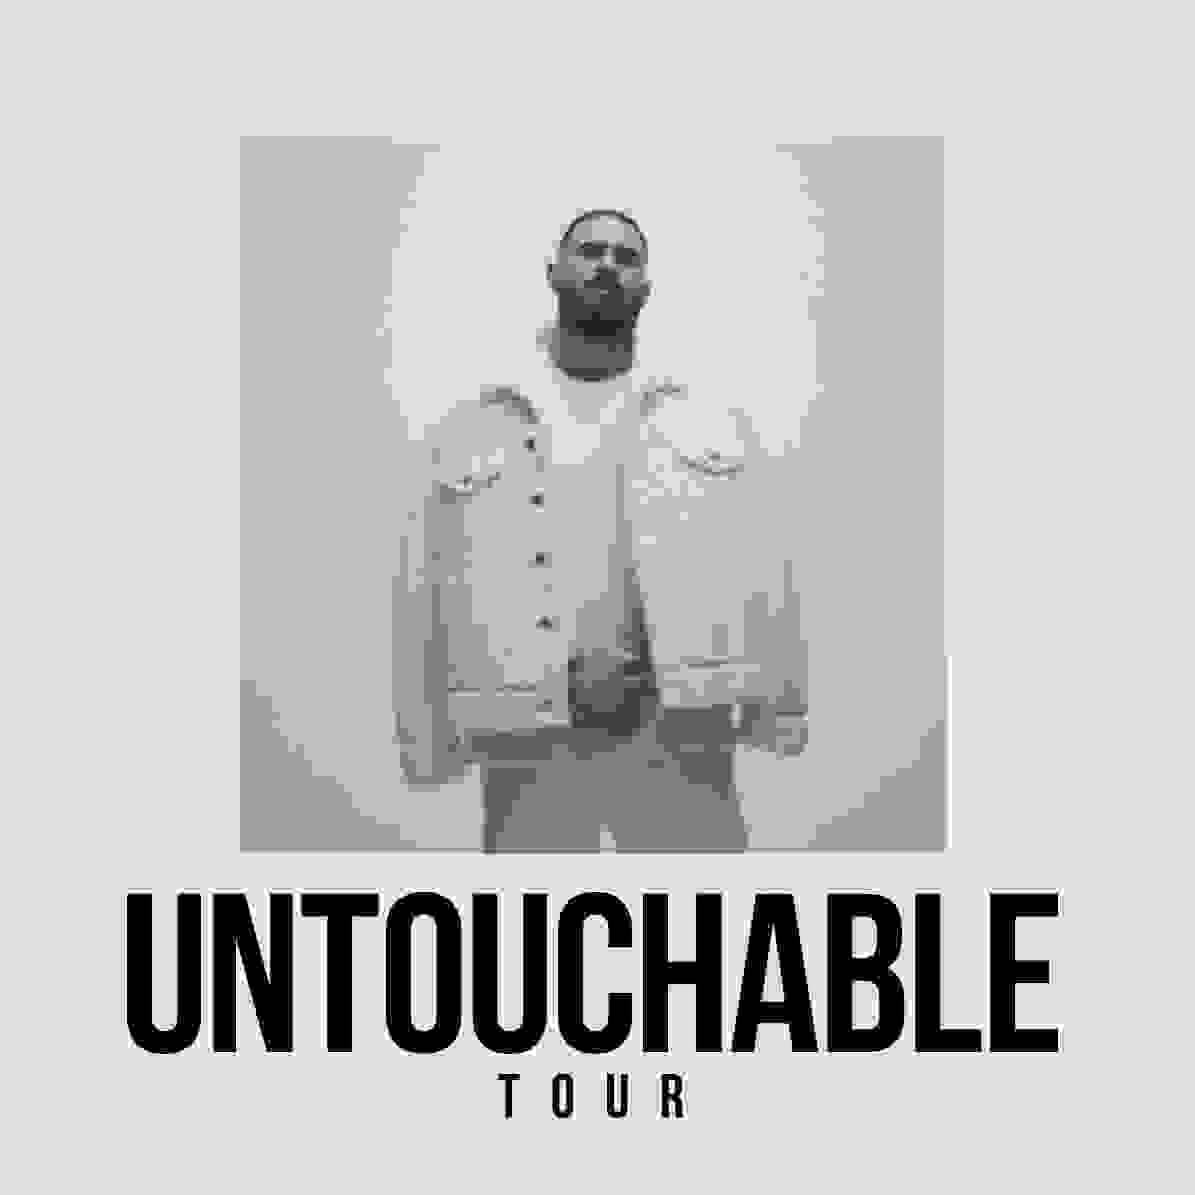 shindy_untouchable_tour_2020_instafeed_1400x1400.jpg